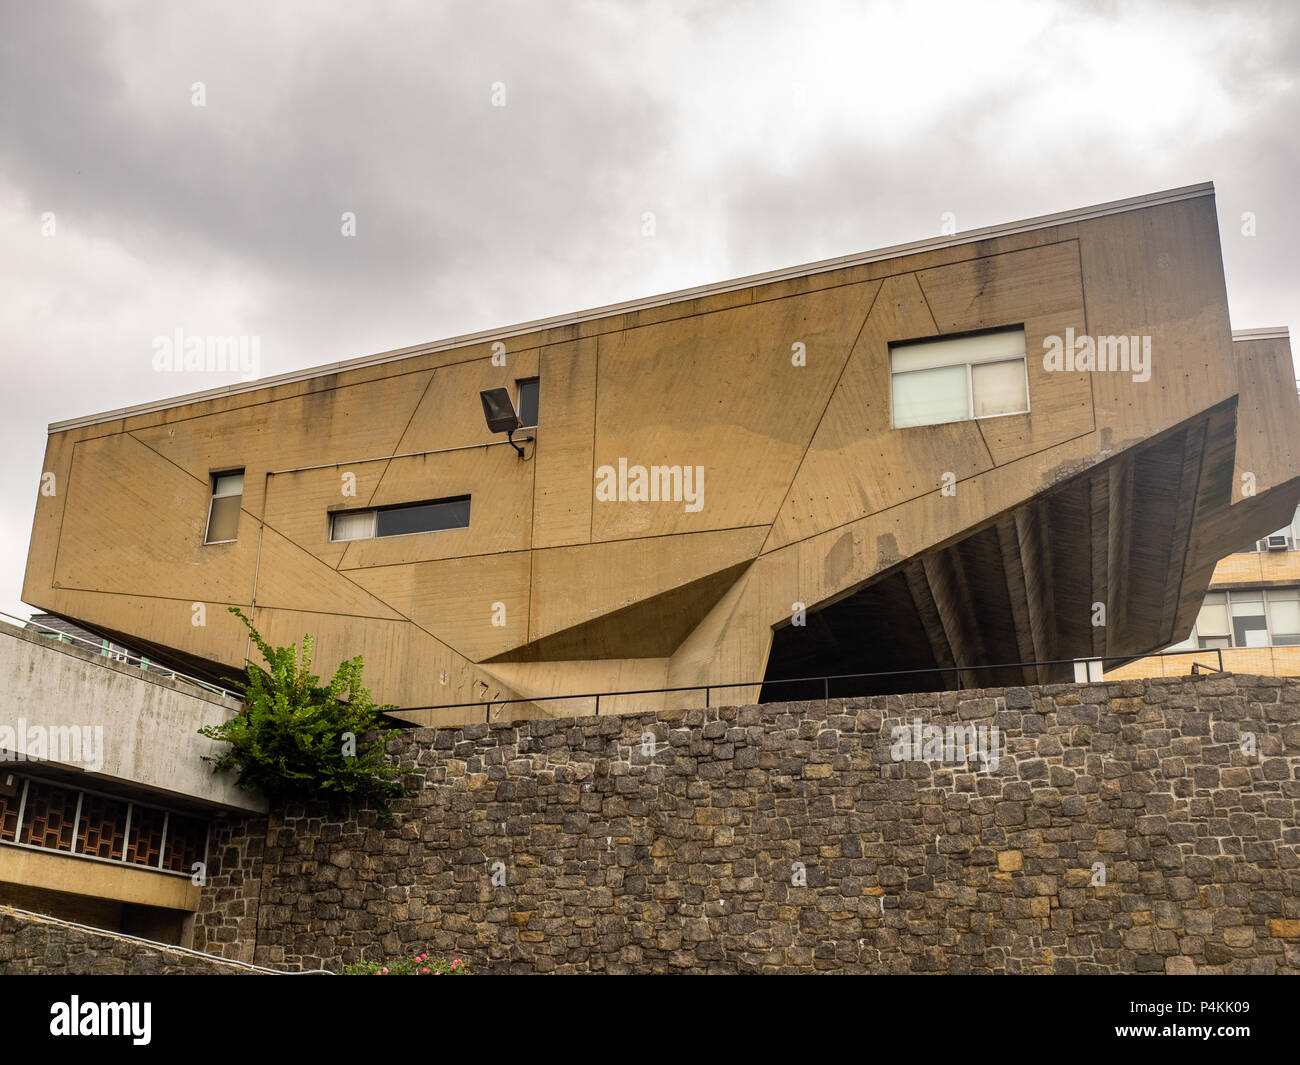 Begrisch Hall designed by Marcel Breuer, Bronx Community Campus, Bronx, New York, USA. - Stock Image